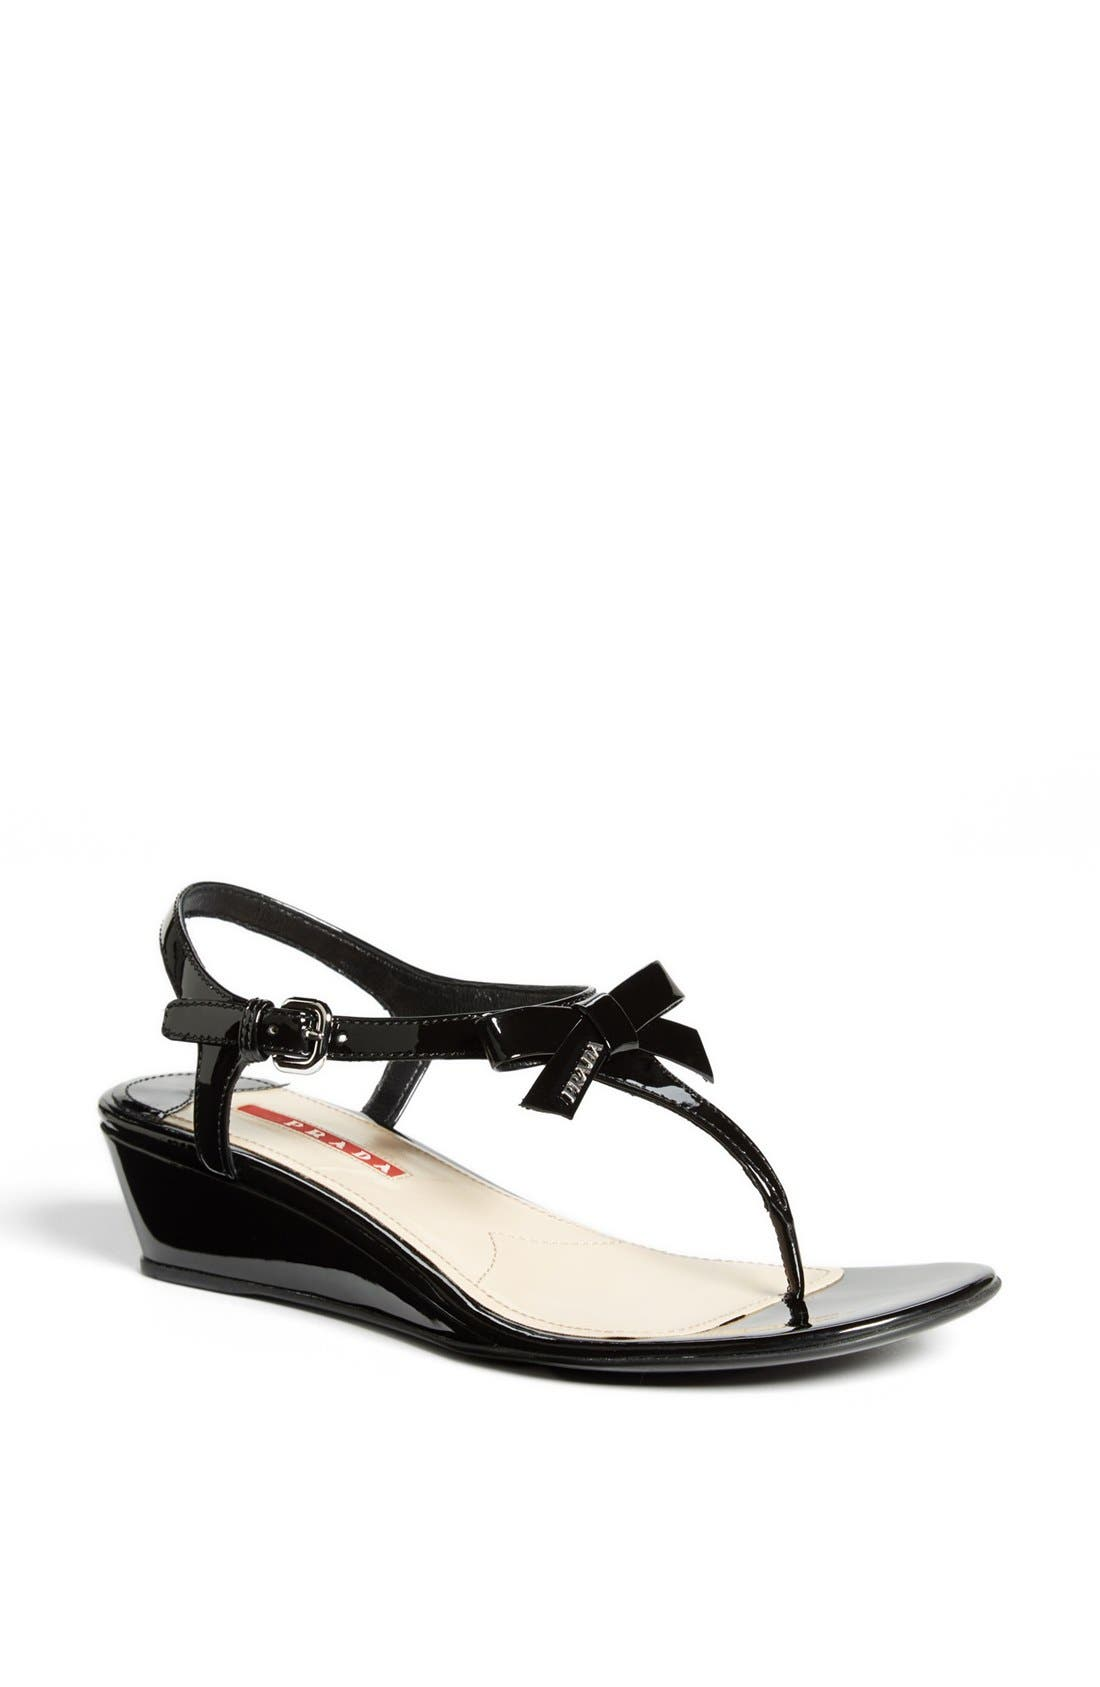 Main Image - Prada 'Bow' Wedge Sandal